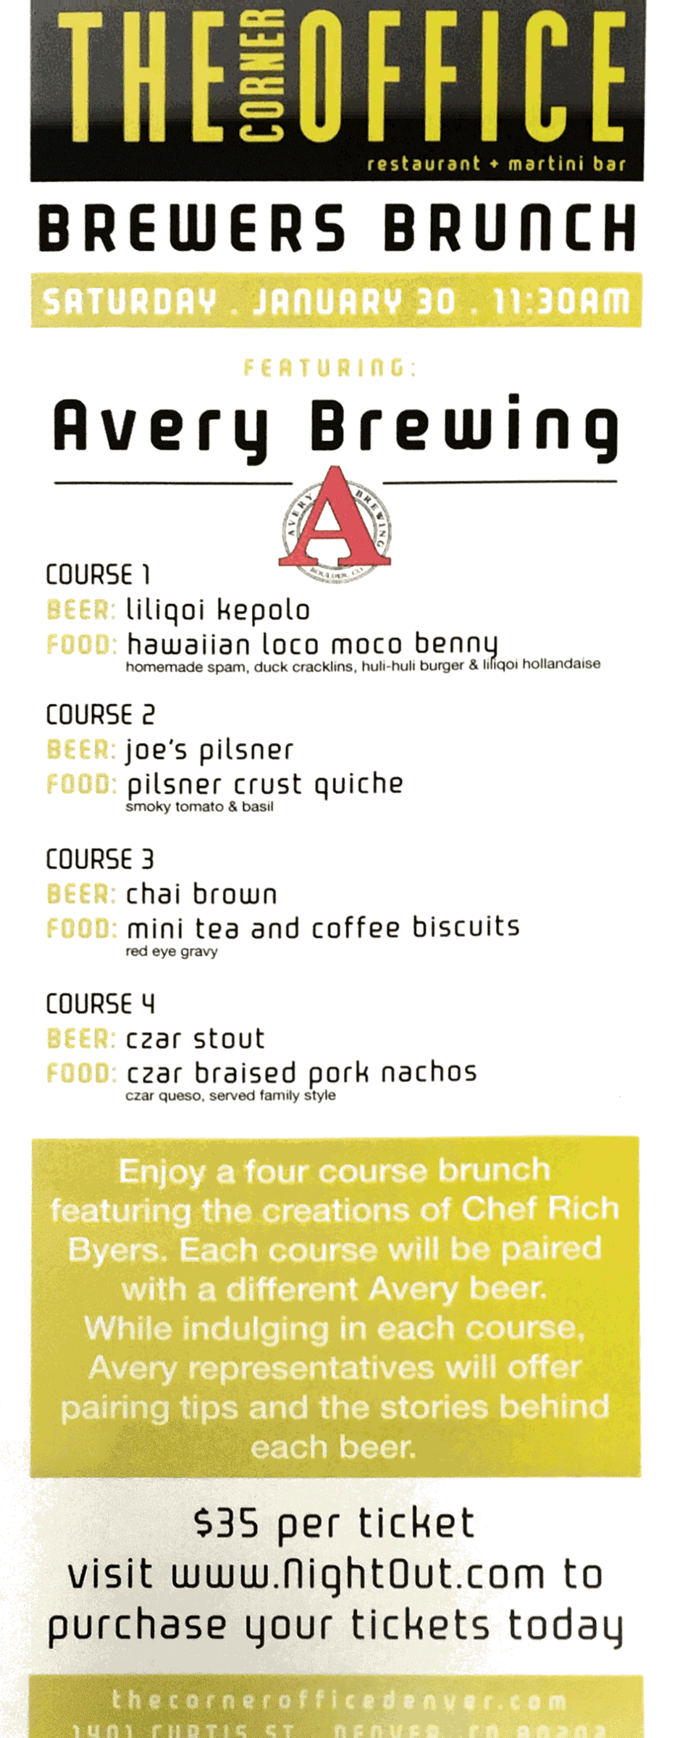 The Corner Office Restaurant & Martini Bar Brewers Brunch featuring Avery Brewing Company